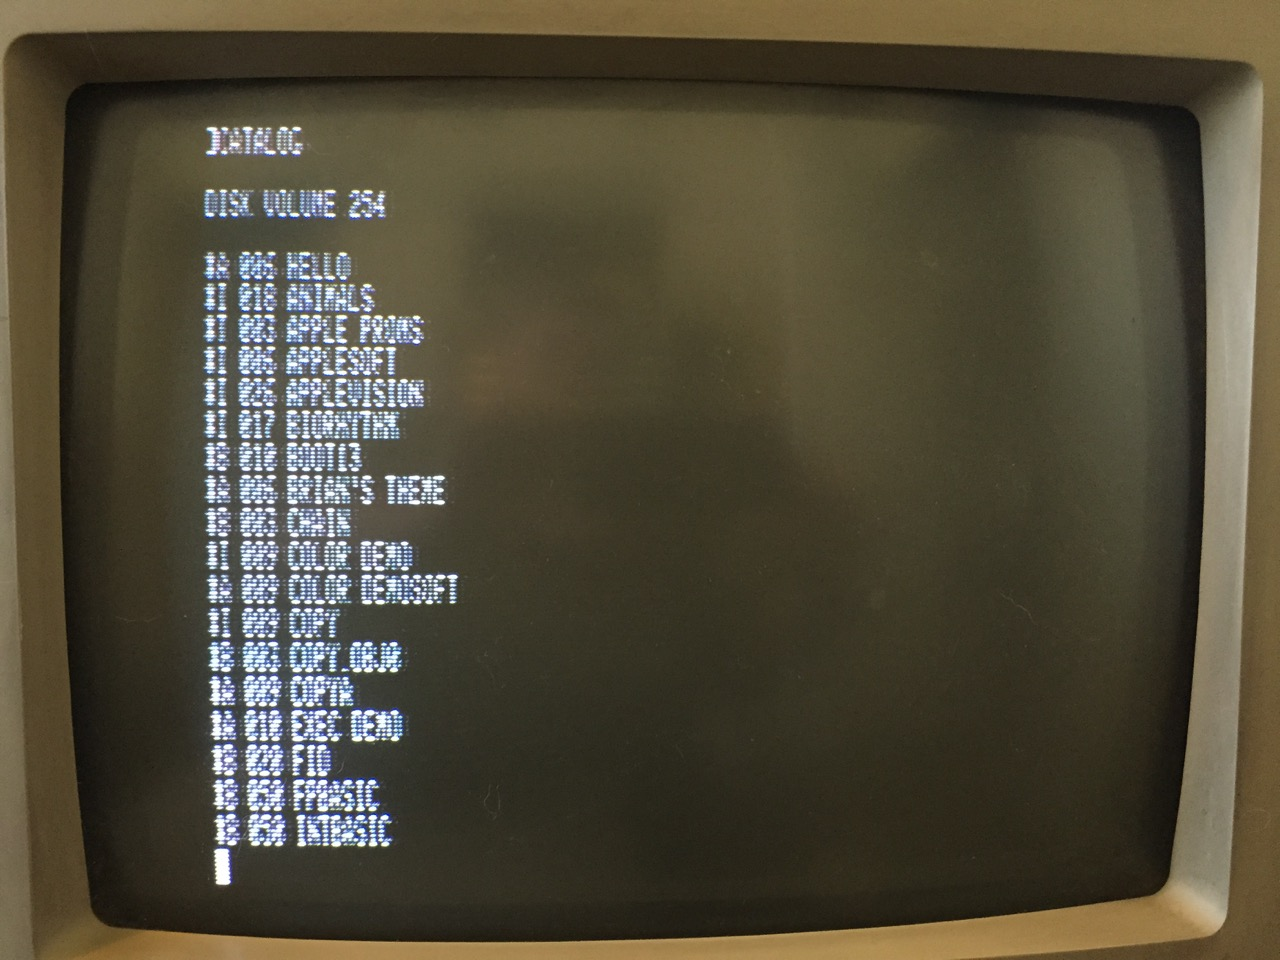 80 Column Text on the Commodore 1080